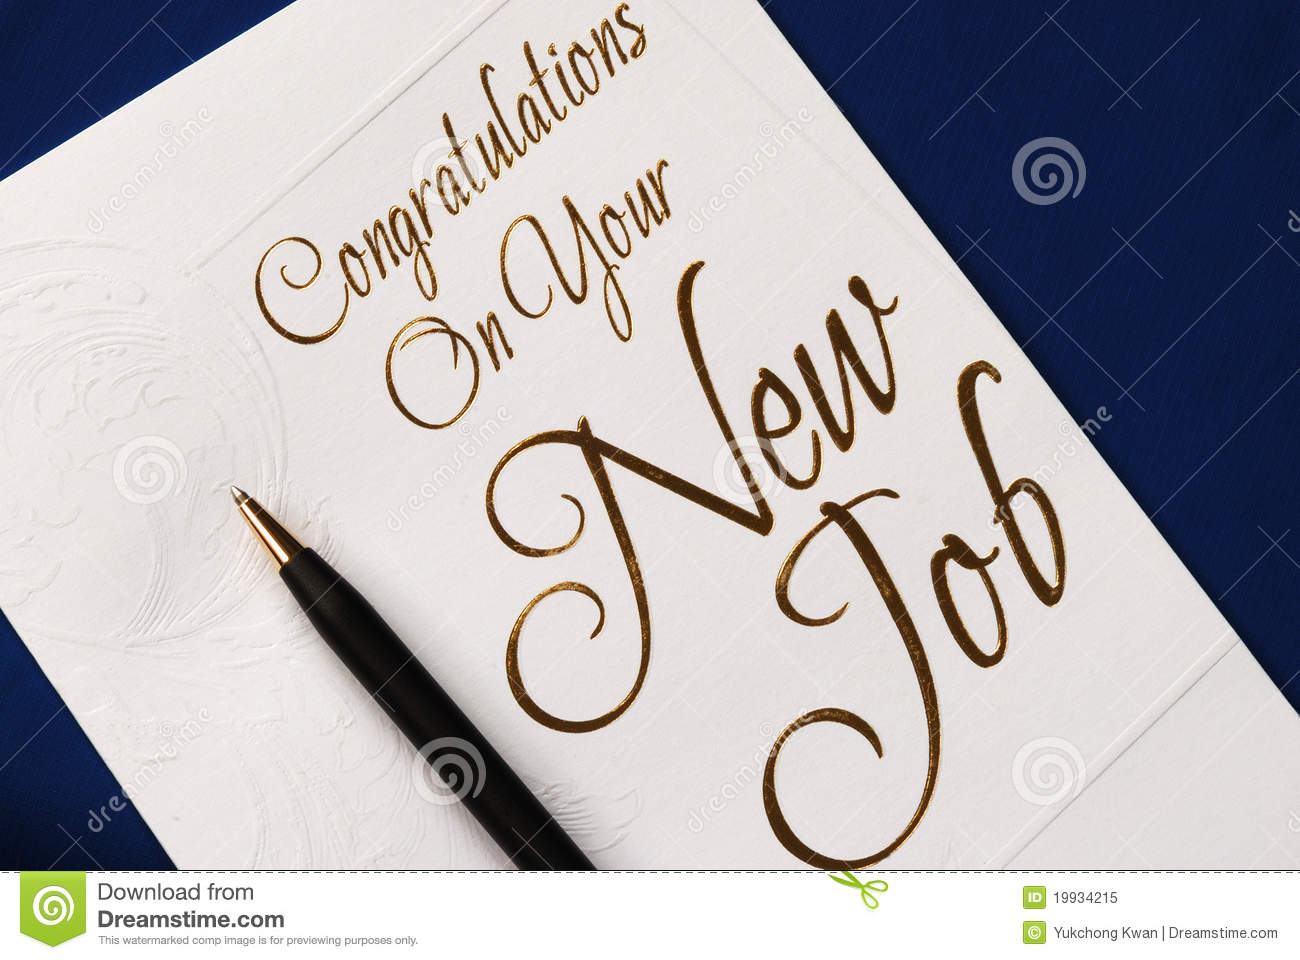 Congratulations On Your New Job Greeting Card Image